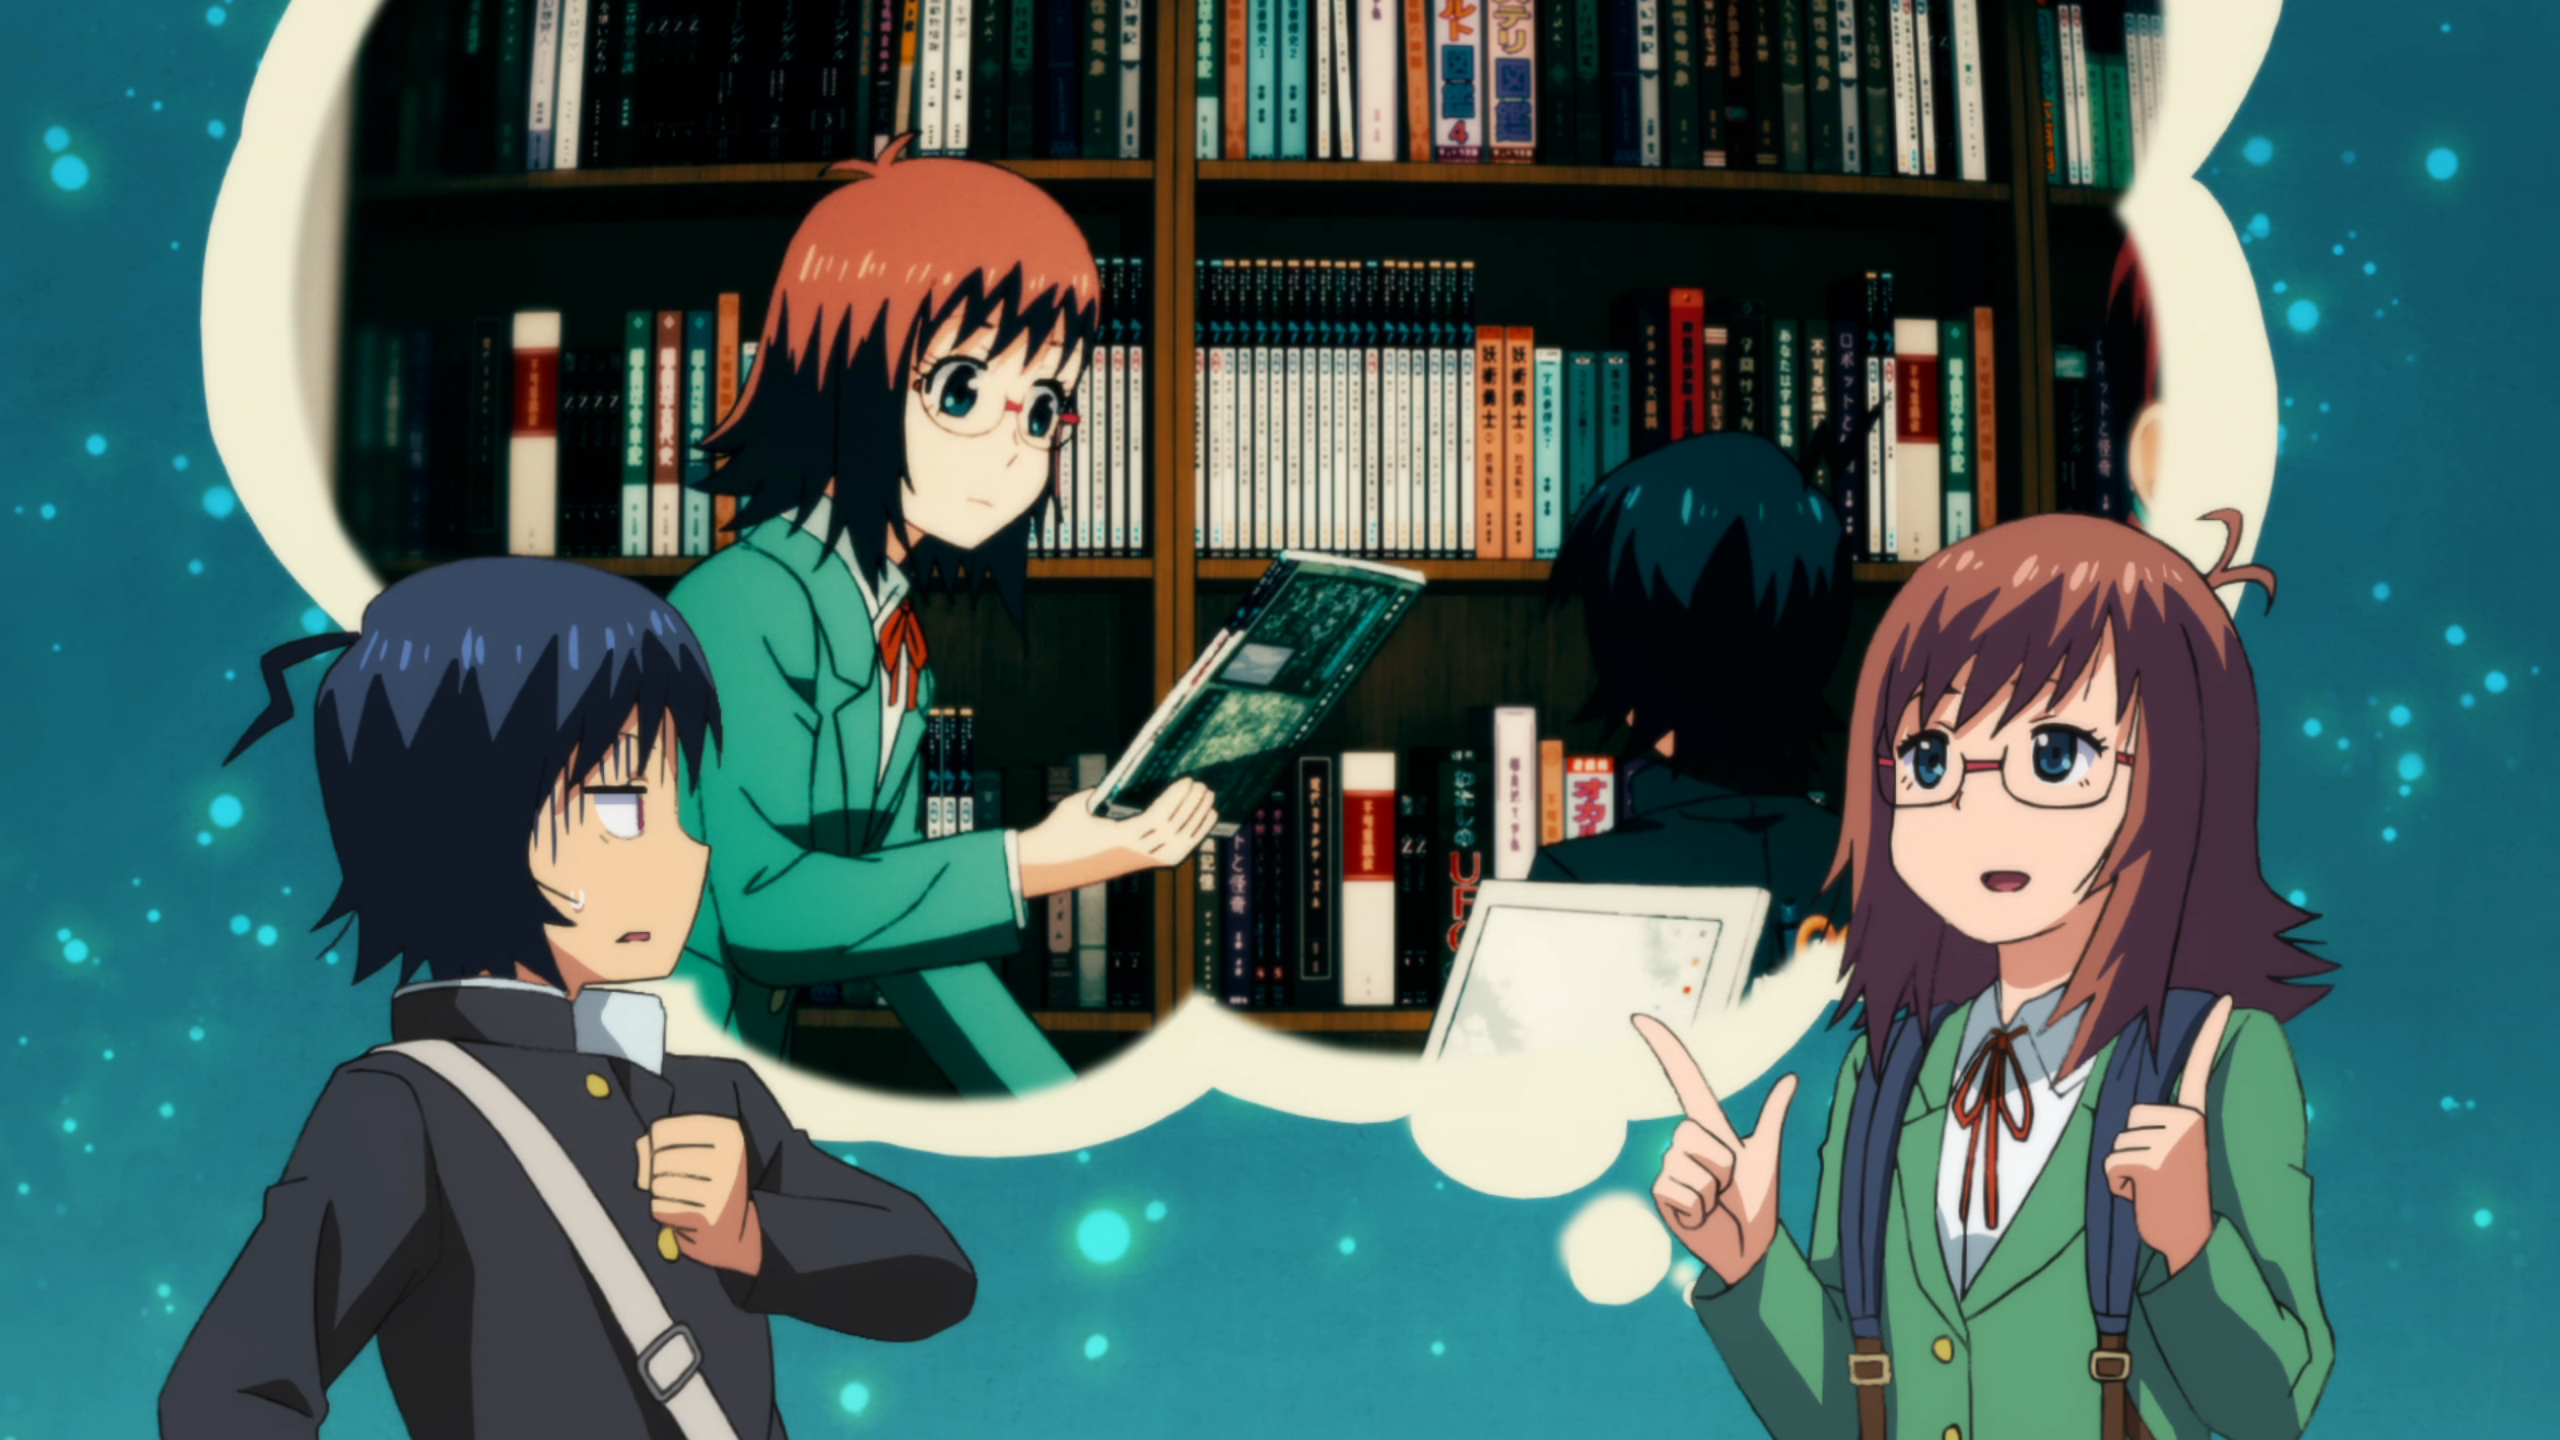 A screenshot from the anime Planet With. A teen girl in glasses faces a teen boy, who looks concerned. Above them is a thought bubble of the two of them looking at a bookshelf.